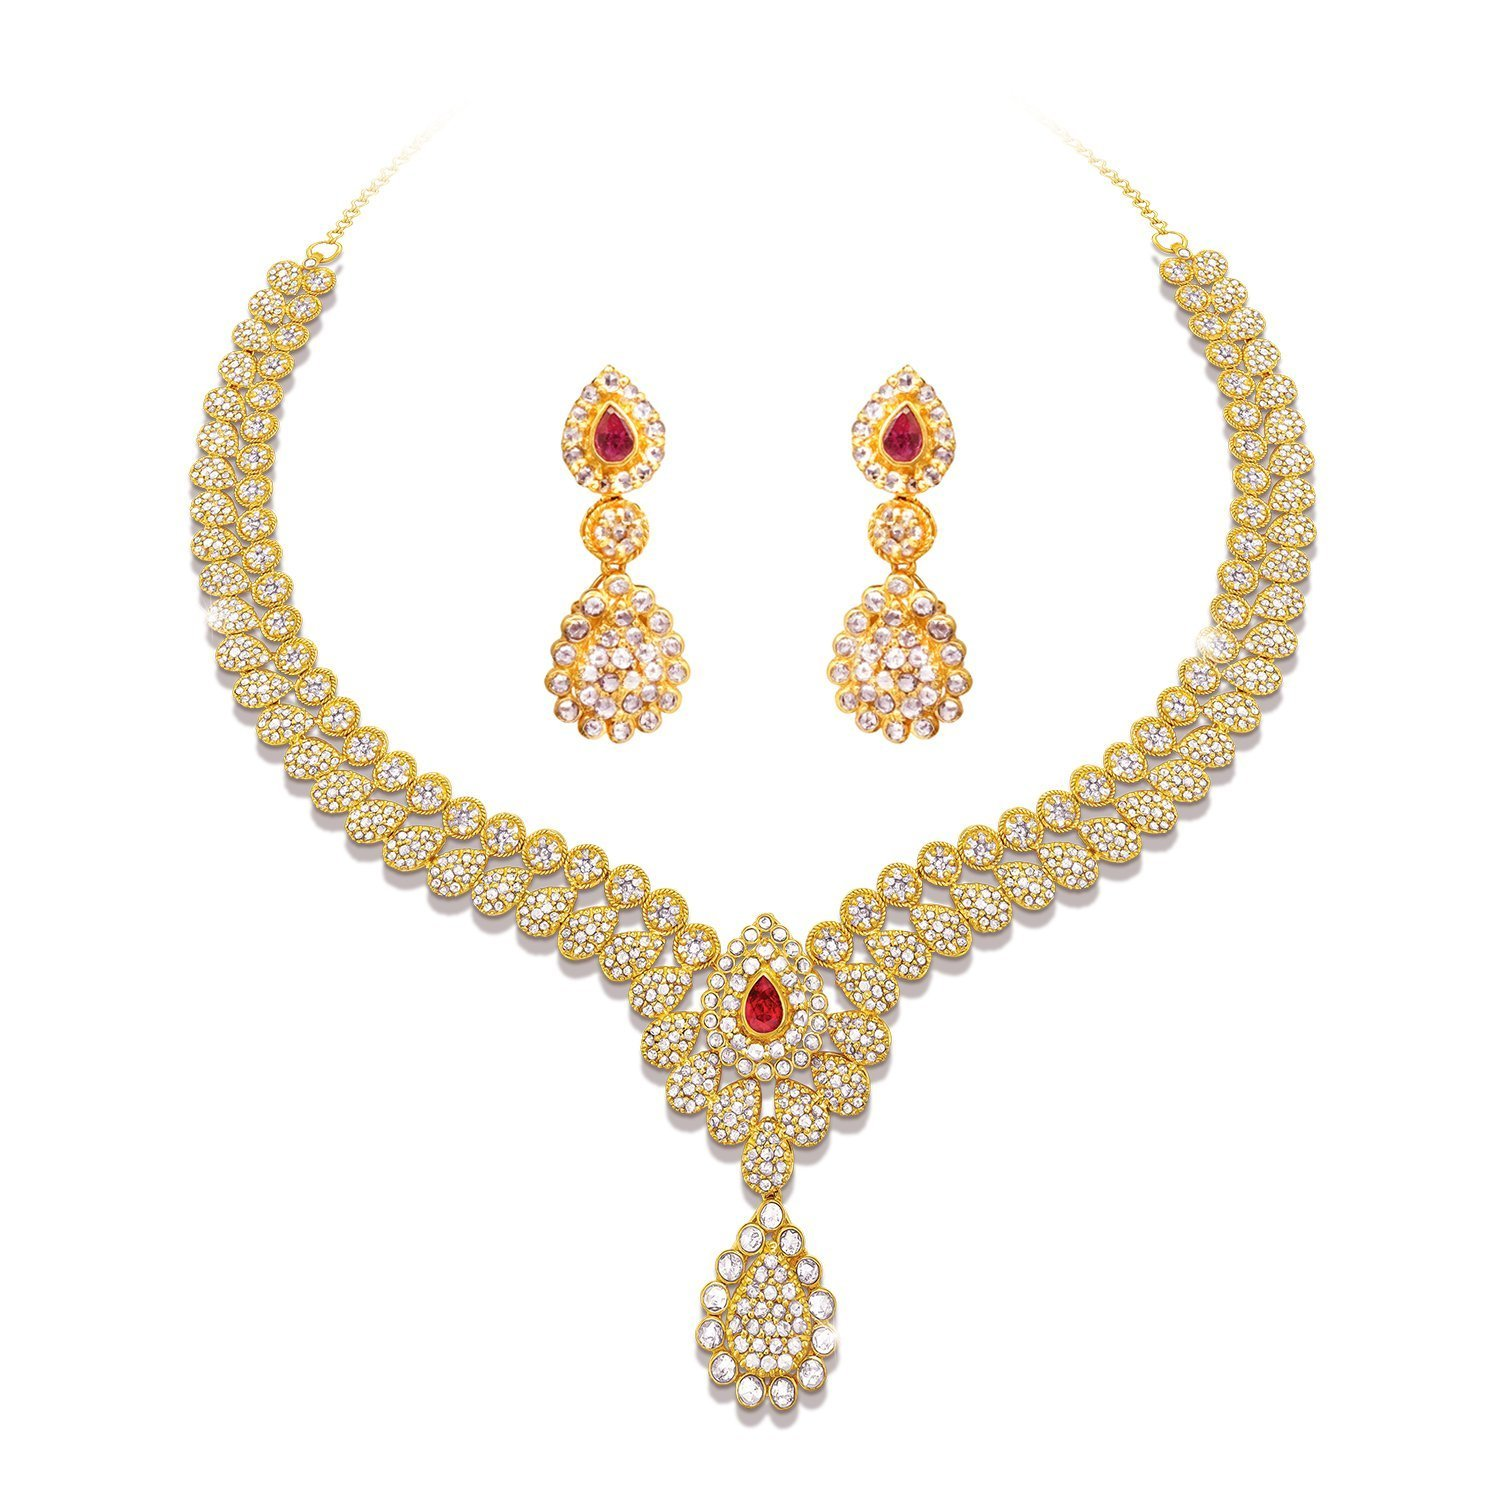 Buy joyalukkas elaganza uncut diamond collection 22k 916 yellow buy joyalukkas elaganza uncut diamond collection 22k 916 yellow gold and diamond chain necklace online at low prices in india amazon jewellery store aloadofball Image collections